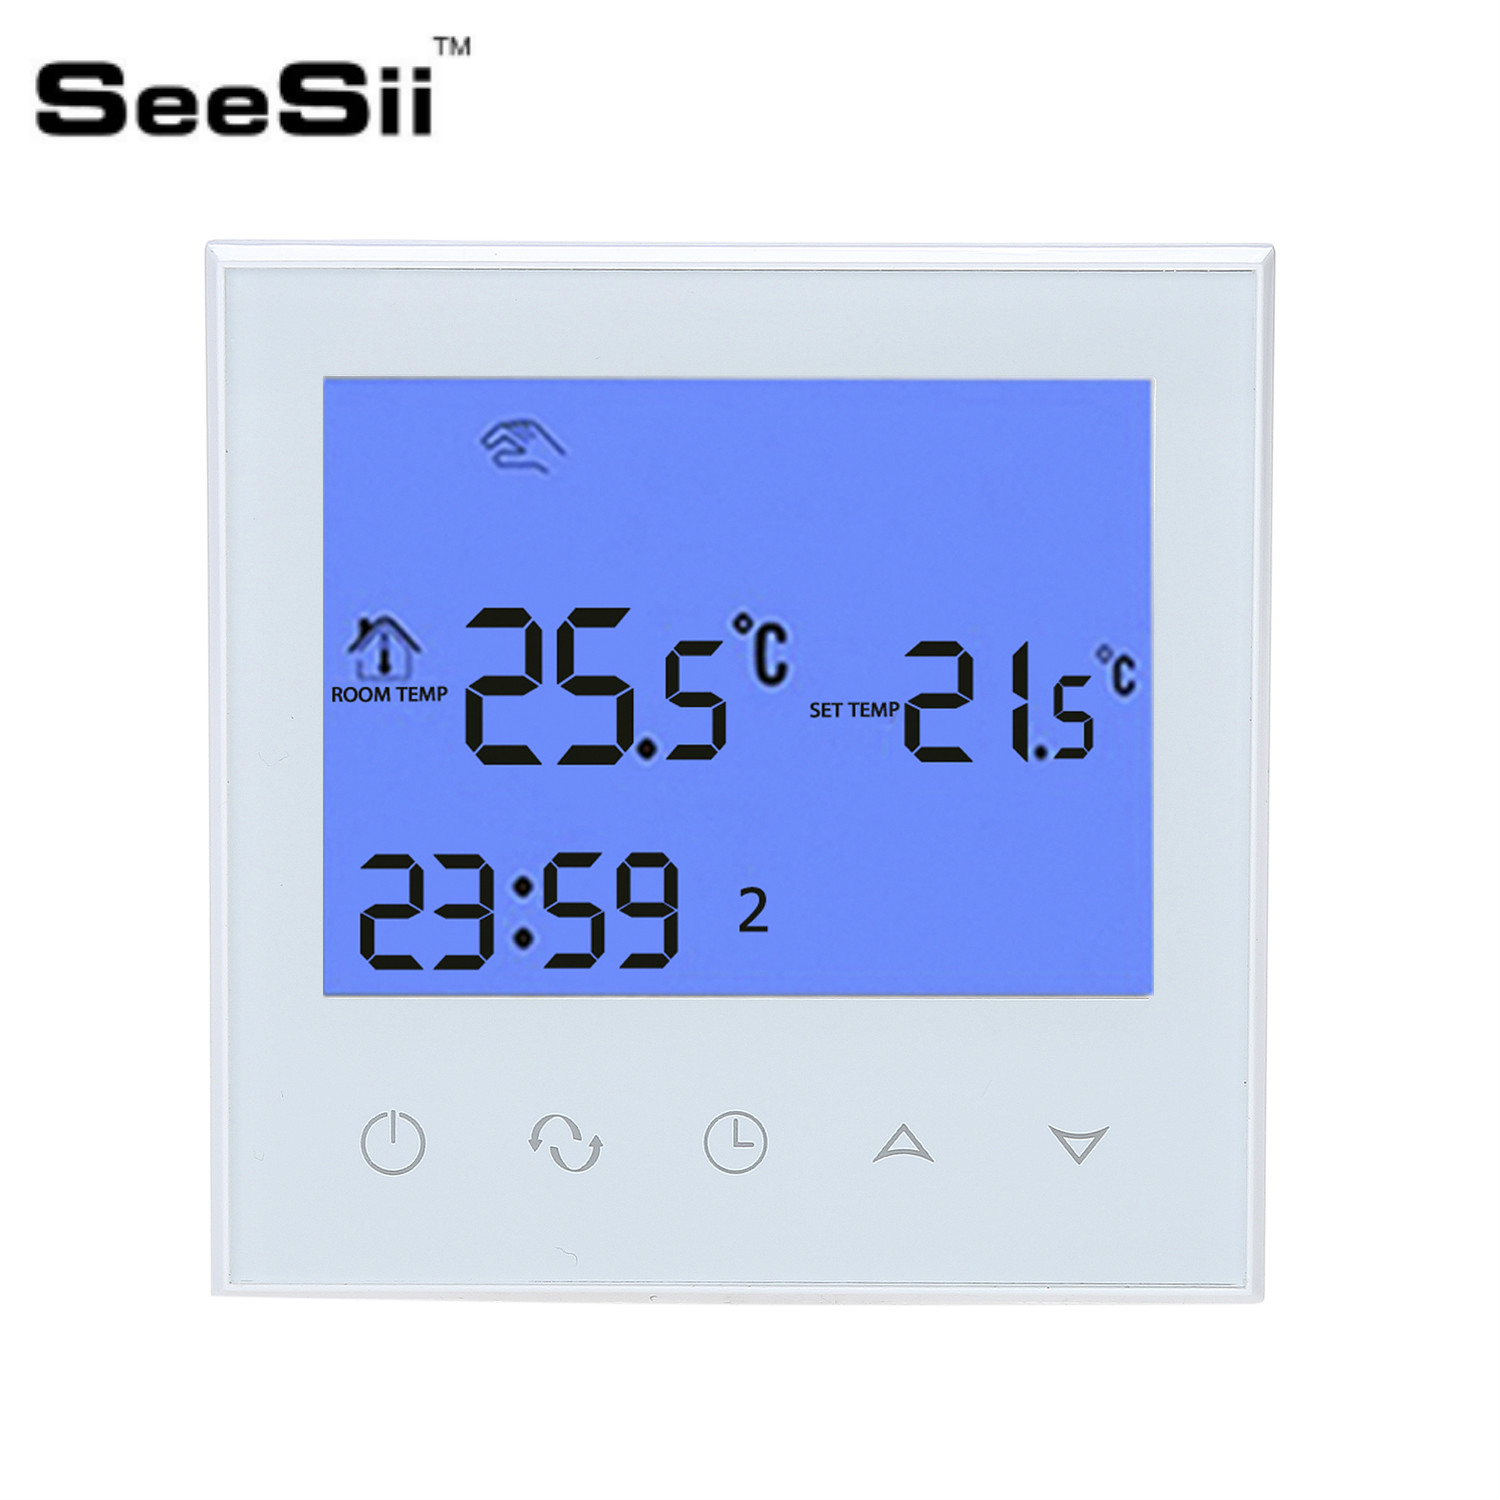 SeeSii Programmable Thermostat Heating Temp WiFi LCD Touch Screen Temperature Control Underfloor 16A 230V Remote<br>